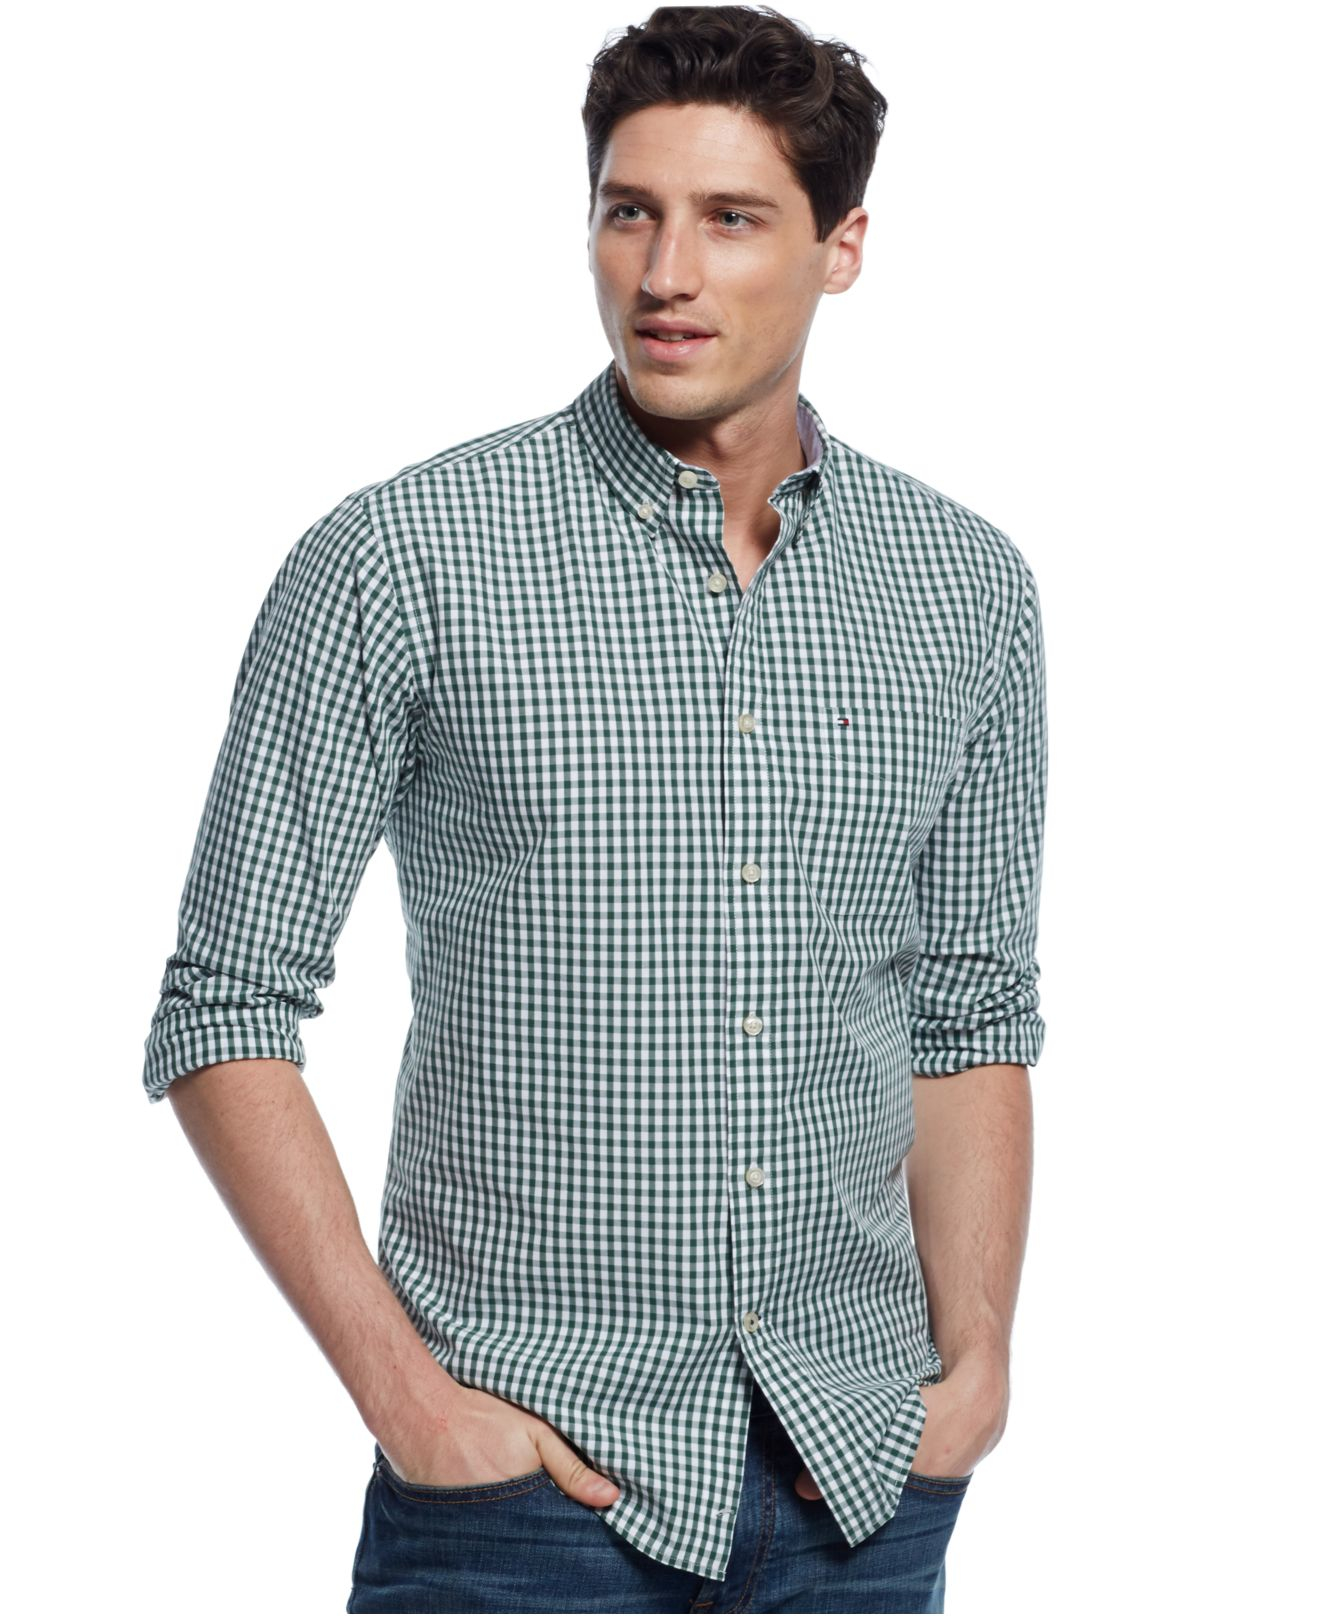 8c806250 Tommy Hilfiger Long-sleeve Twain Check Shirt in Green for Men - Lyst